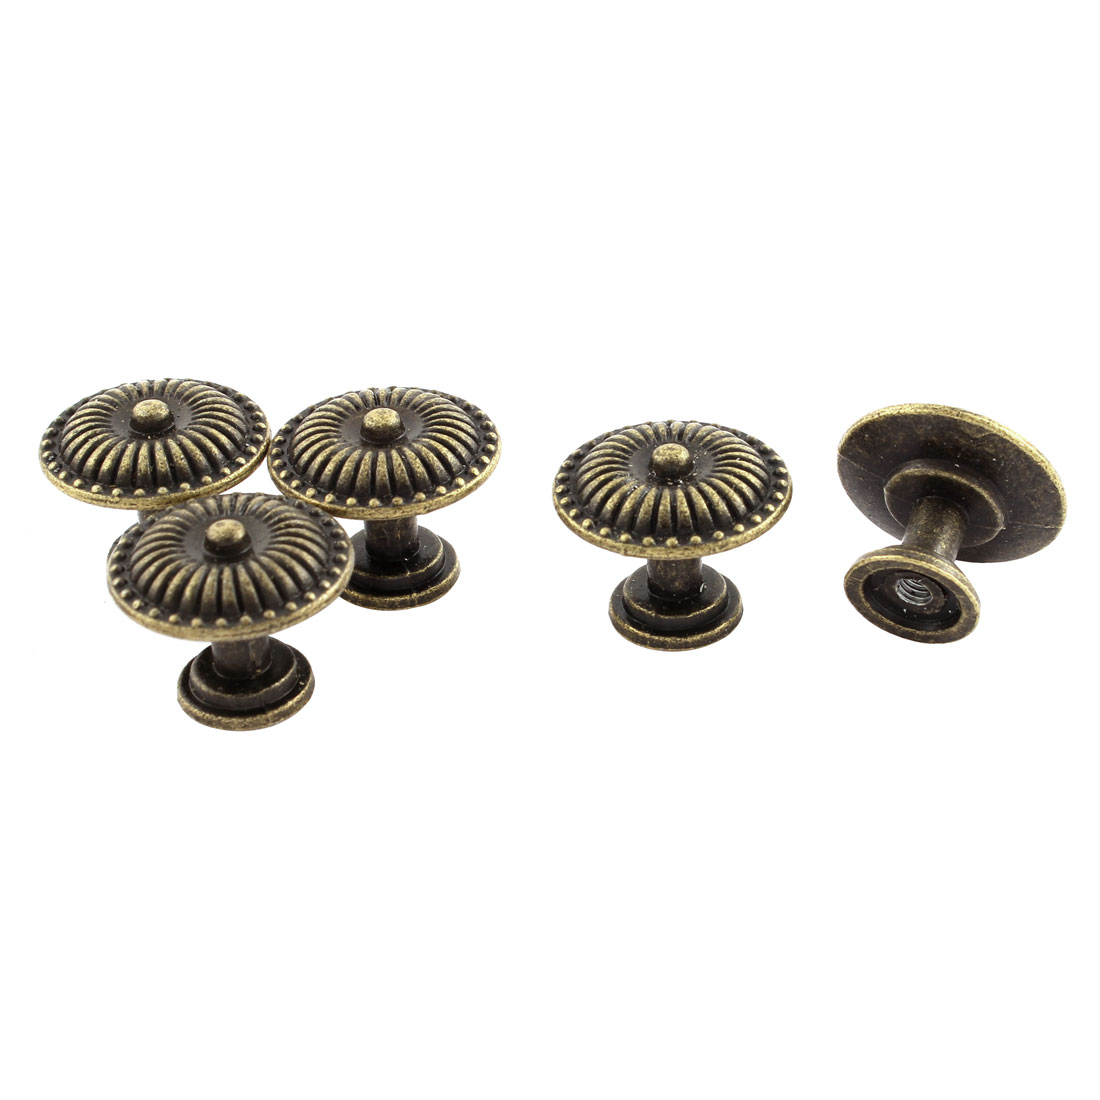 Bronze Tone Single Hole Zinc Alloy Flower Embossment Pull Knobs Handle 5 Pcs